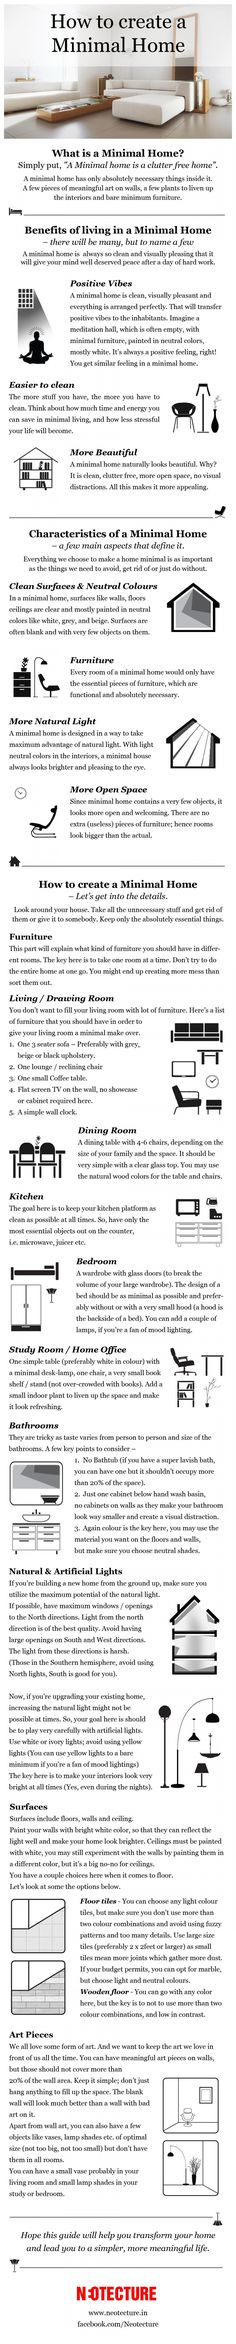 A Simple And Informative Guide On How To Create A Minimalistic Home - DesignTAXI.com